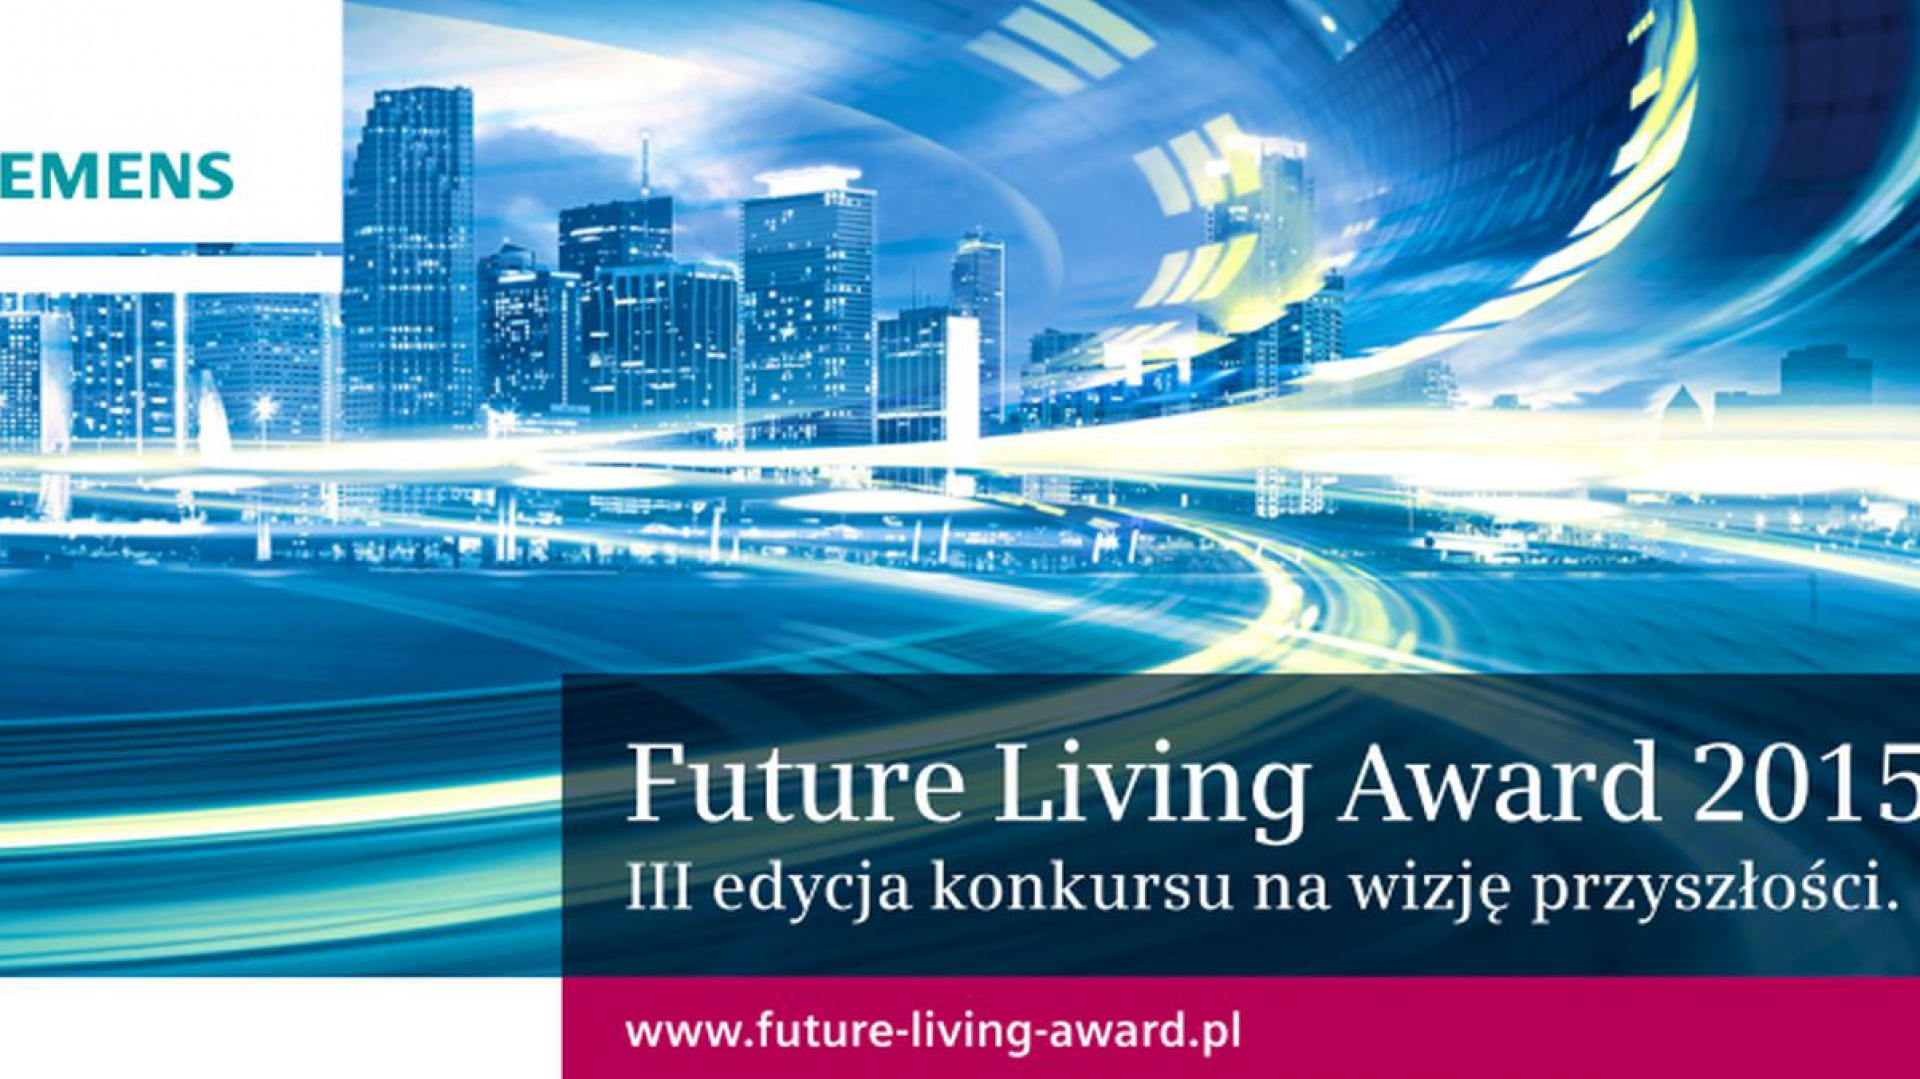 Future Living Award 2015